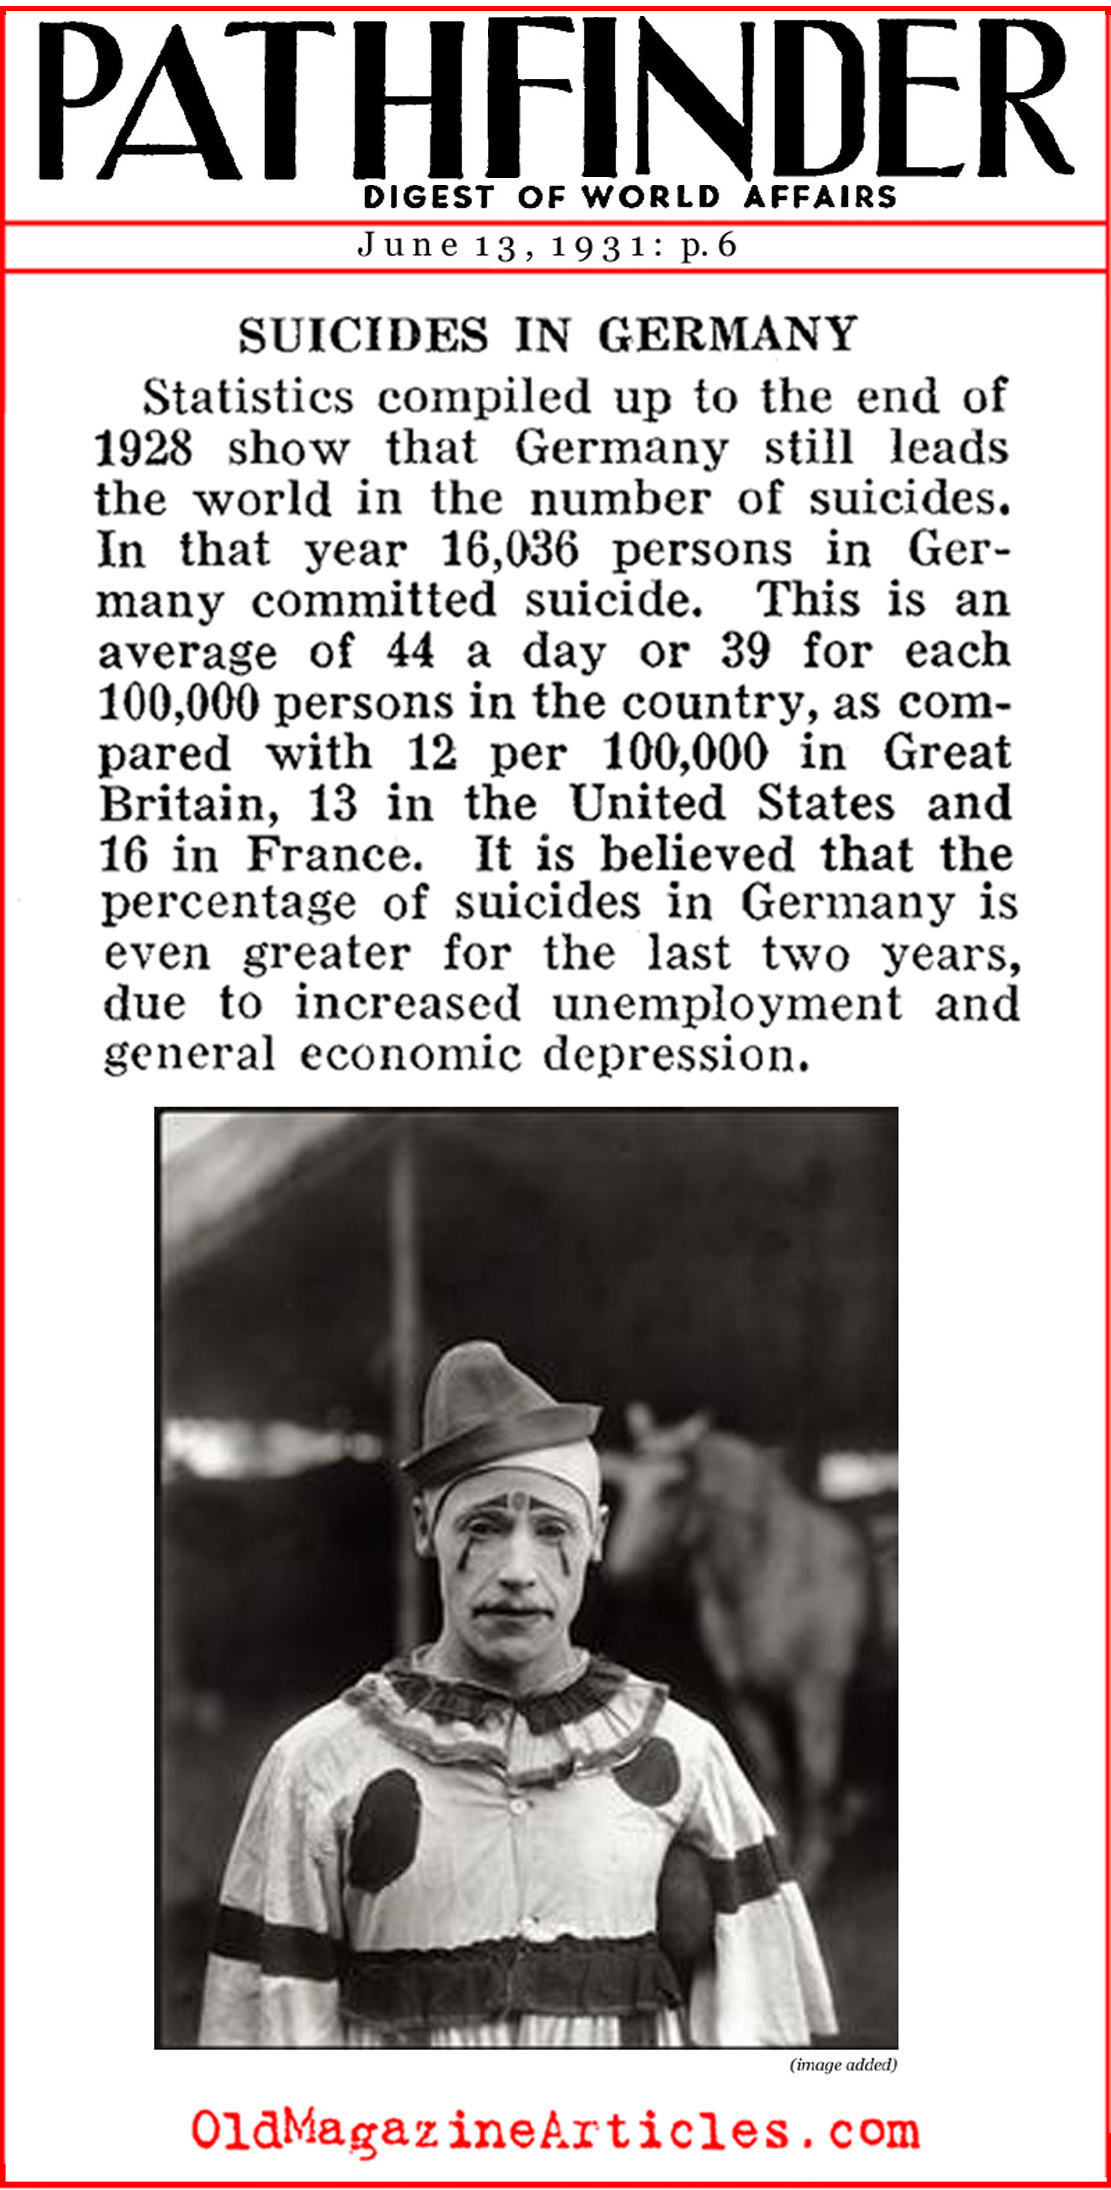 Over 15,000 Suicides in 1928 Germany (Pathfinder Magazine, 1931)